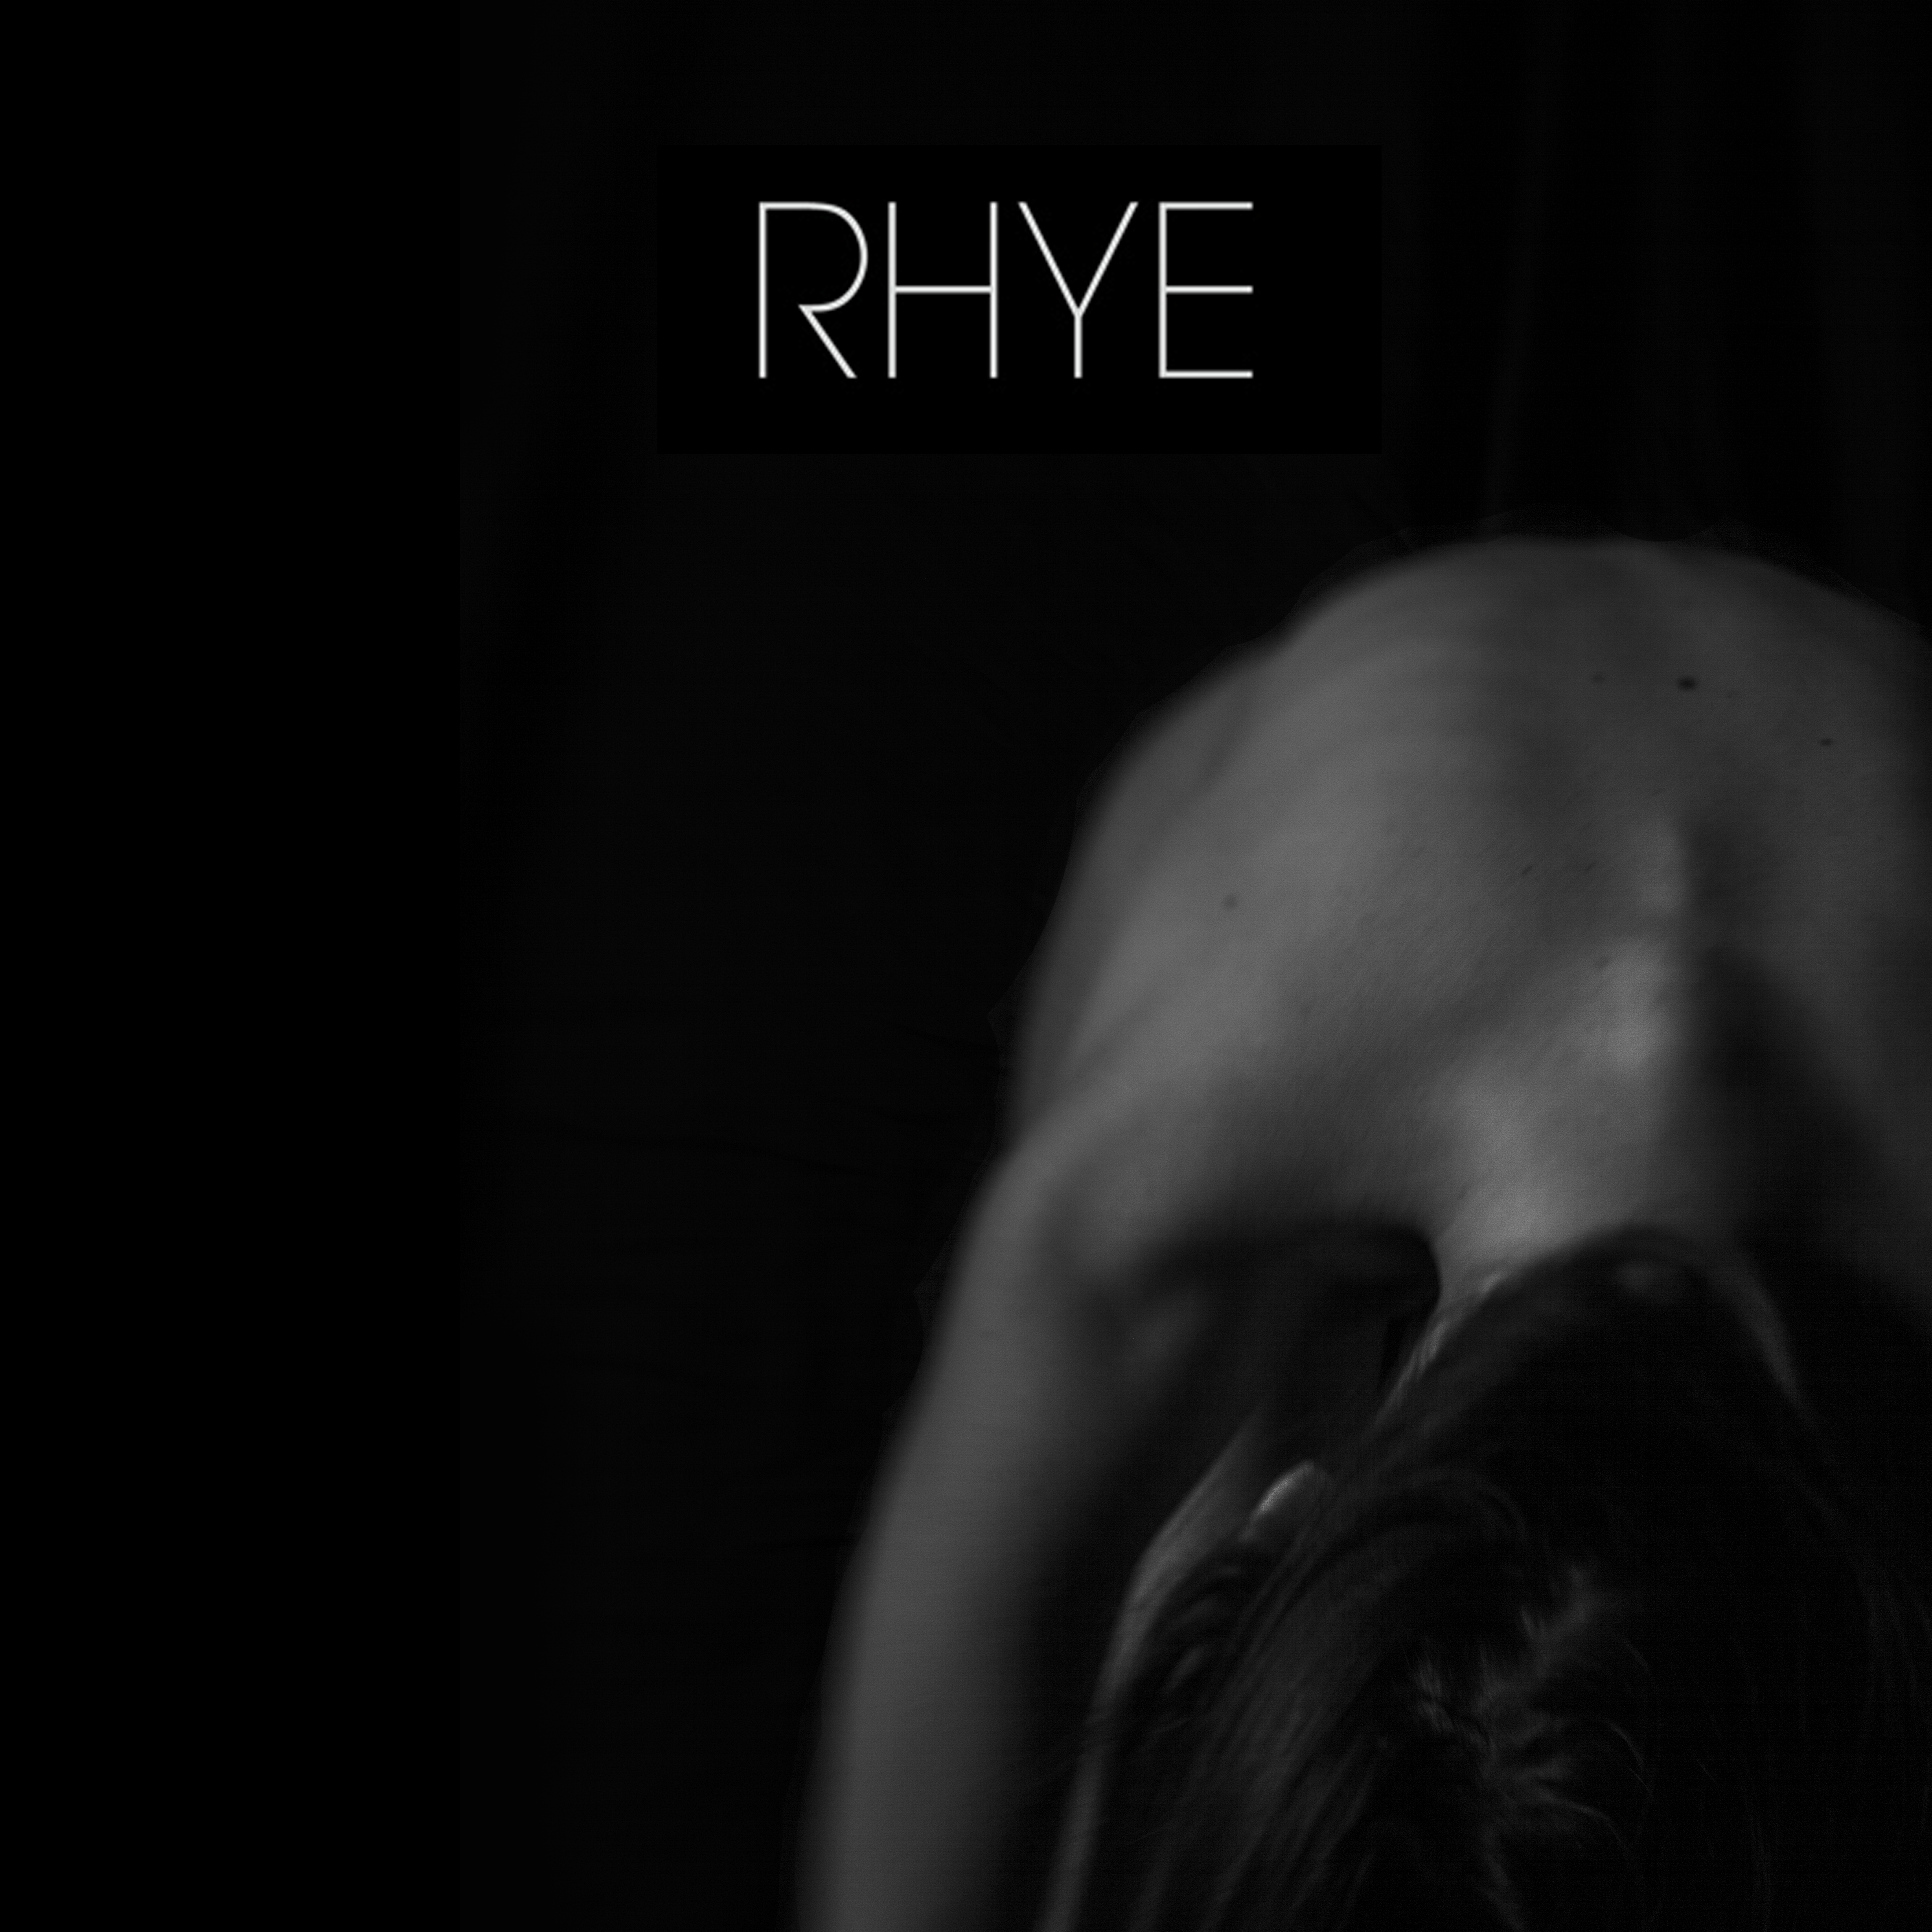 rhyepress Disrupting the Darkness: St. Vincent, Blondie, and Rhye on David Lynch